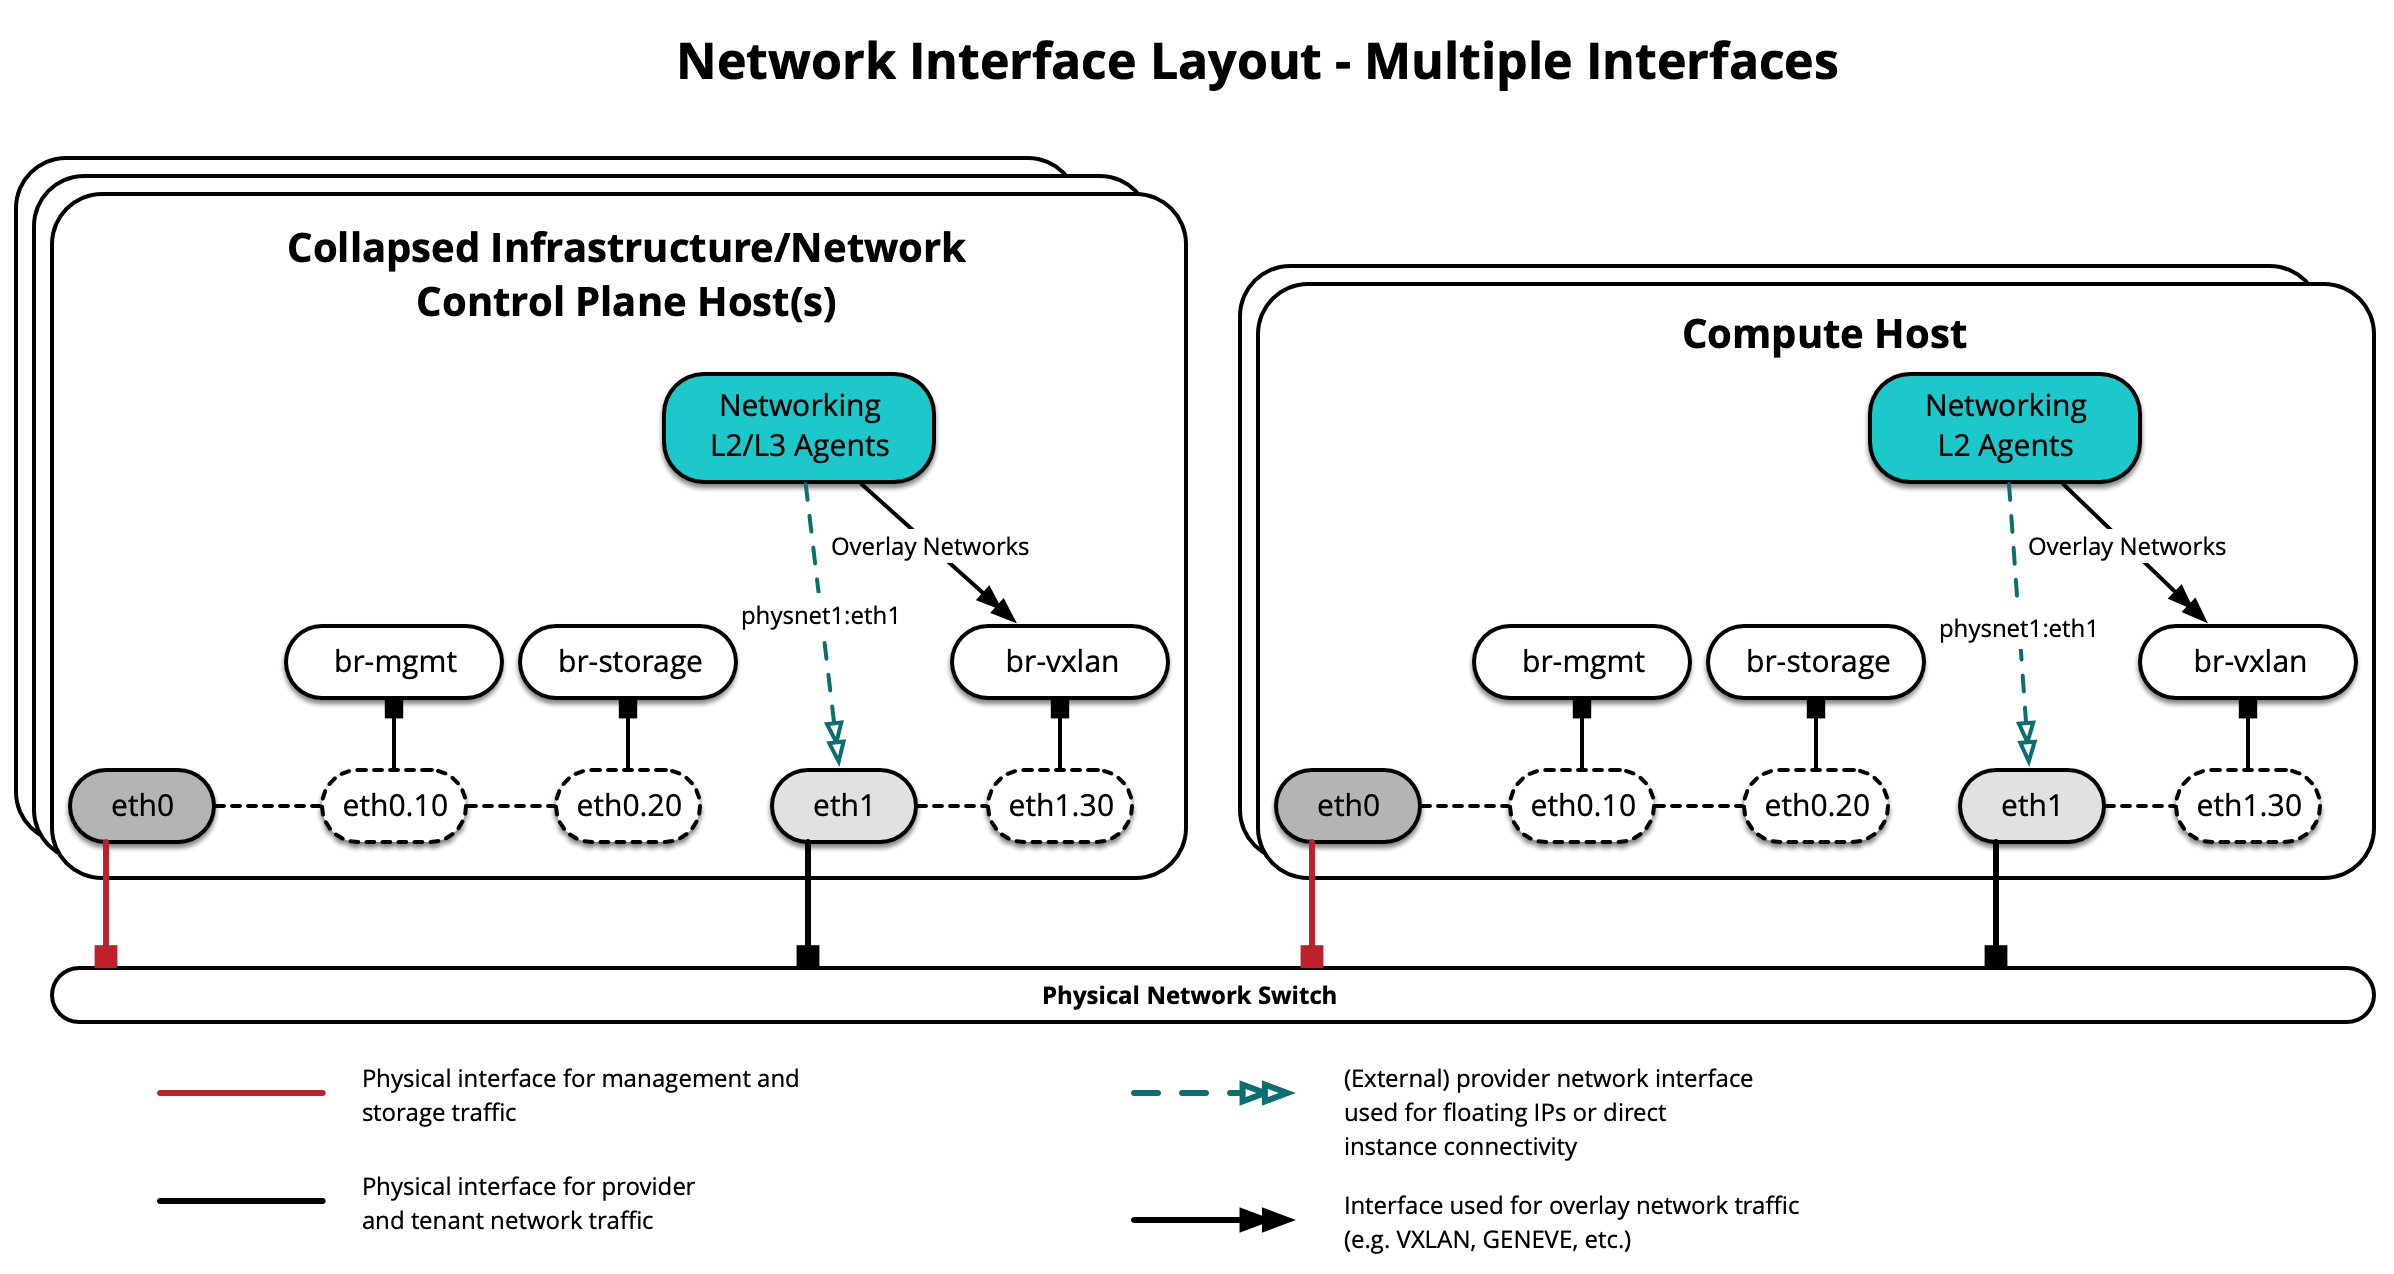 Network Interface Layout - Multiple Interfaces